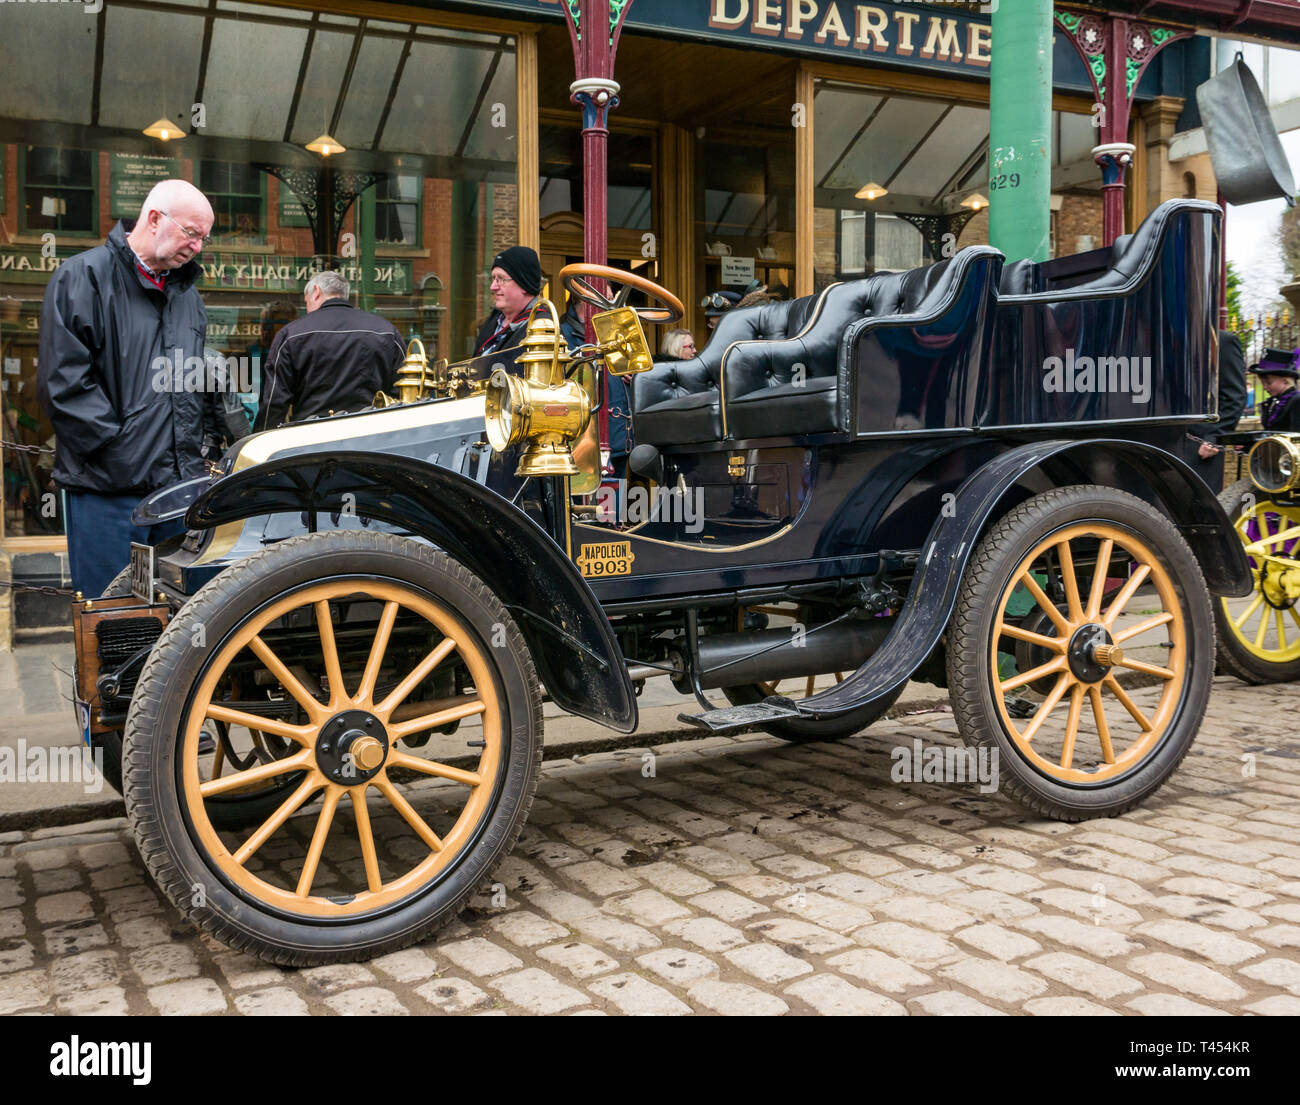 Beamish Museum, Beamish, Durham County, England, United Kingdom, 13 April 2019. Beamish Steam Day: Vintage 1903 De Dion Bouton Napoleon on display at Beamish Living Museum - Stock Image